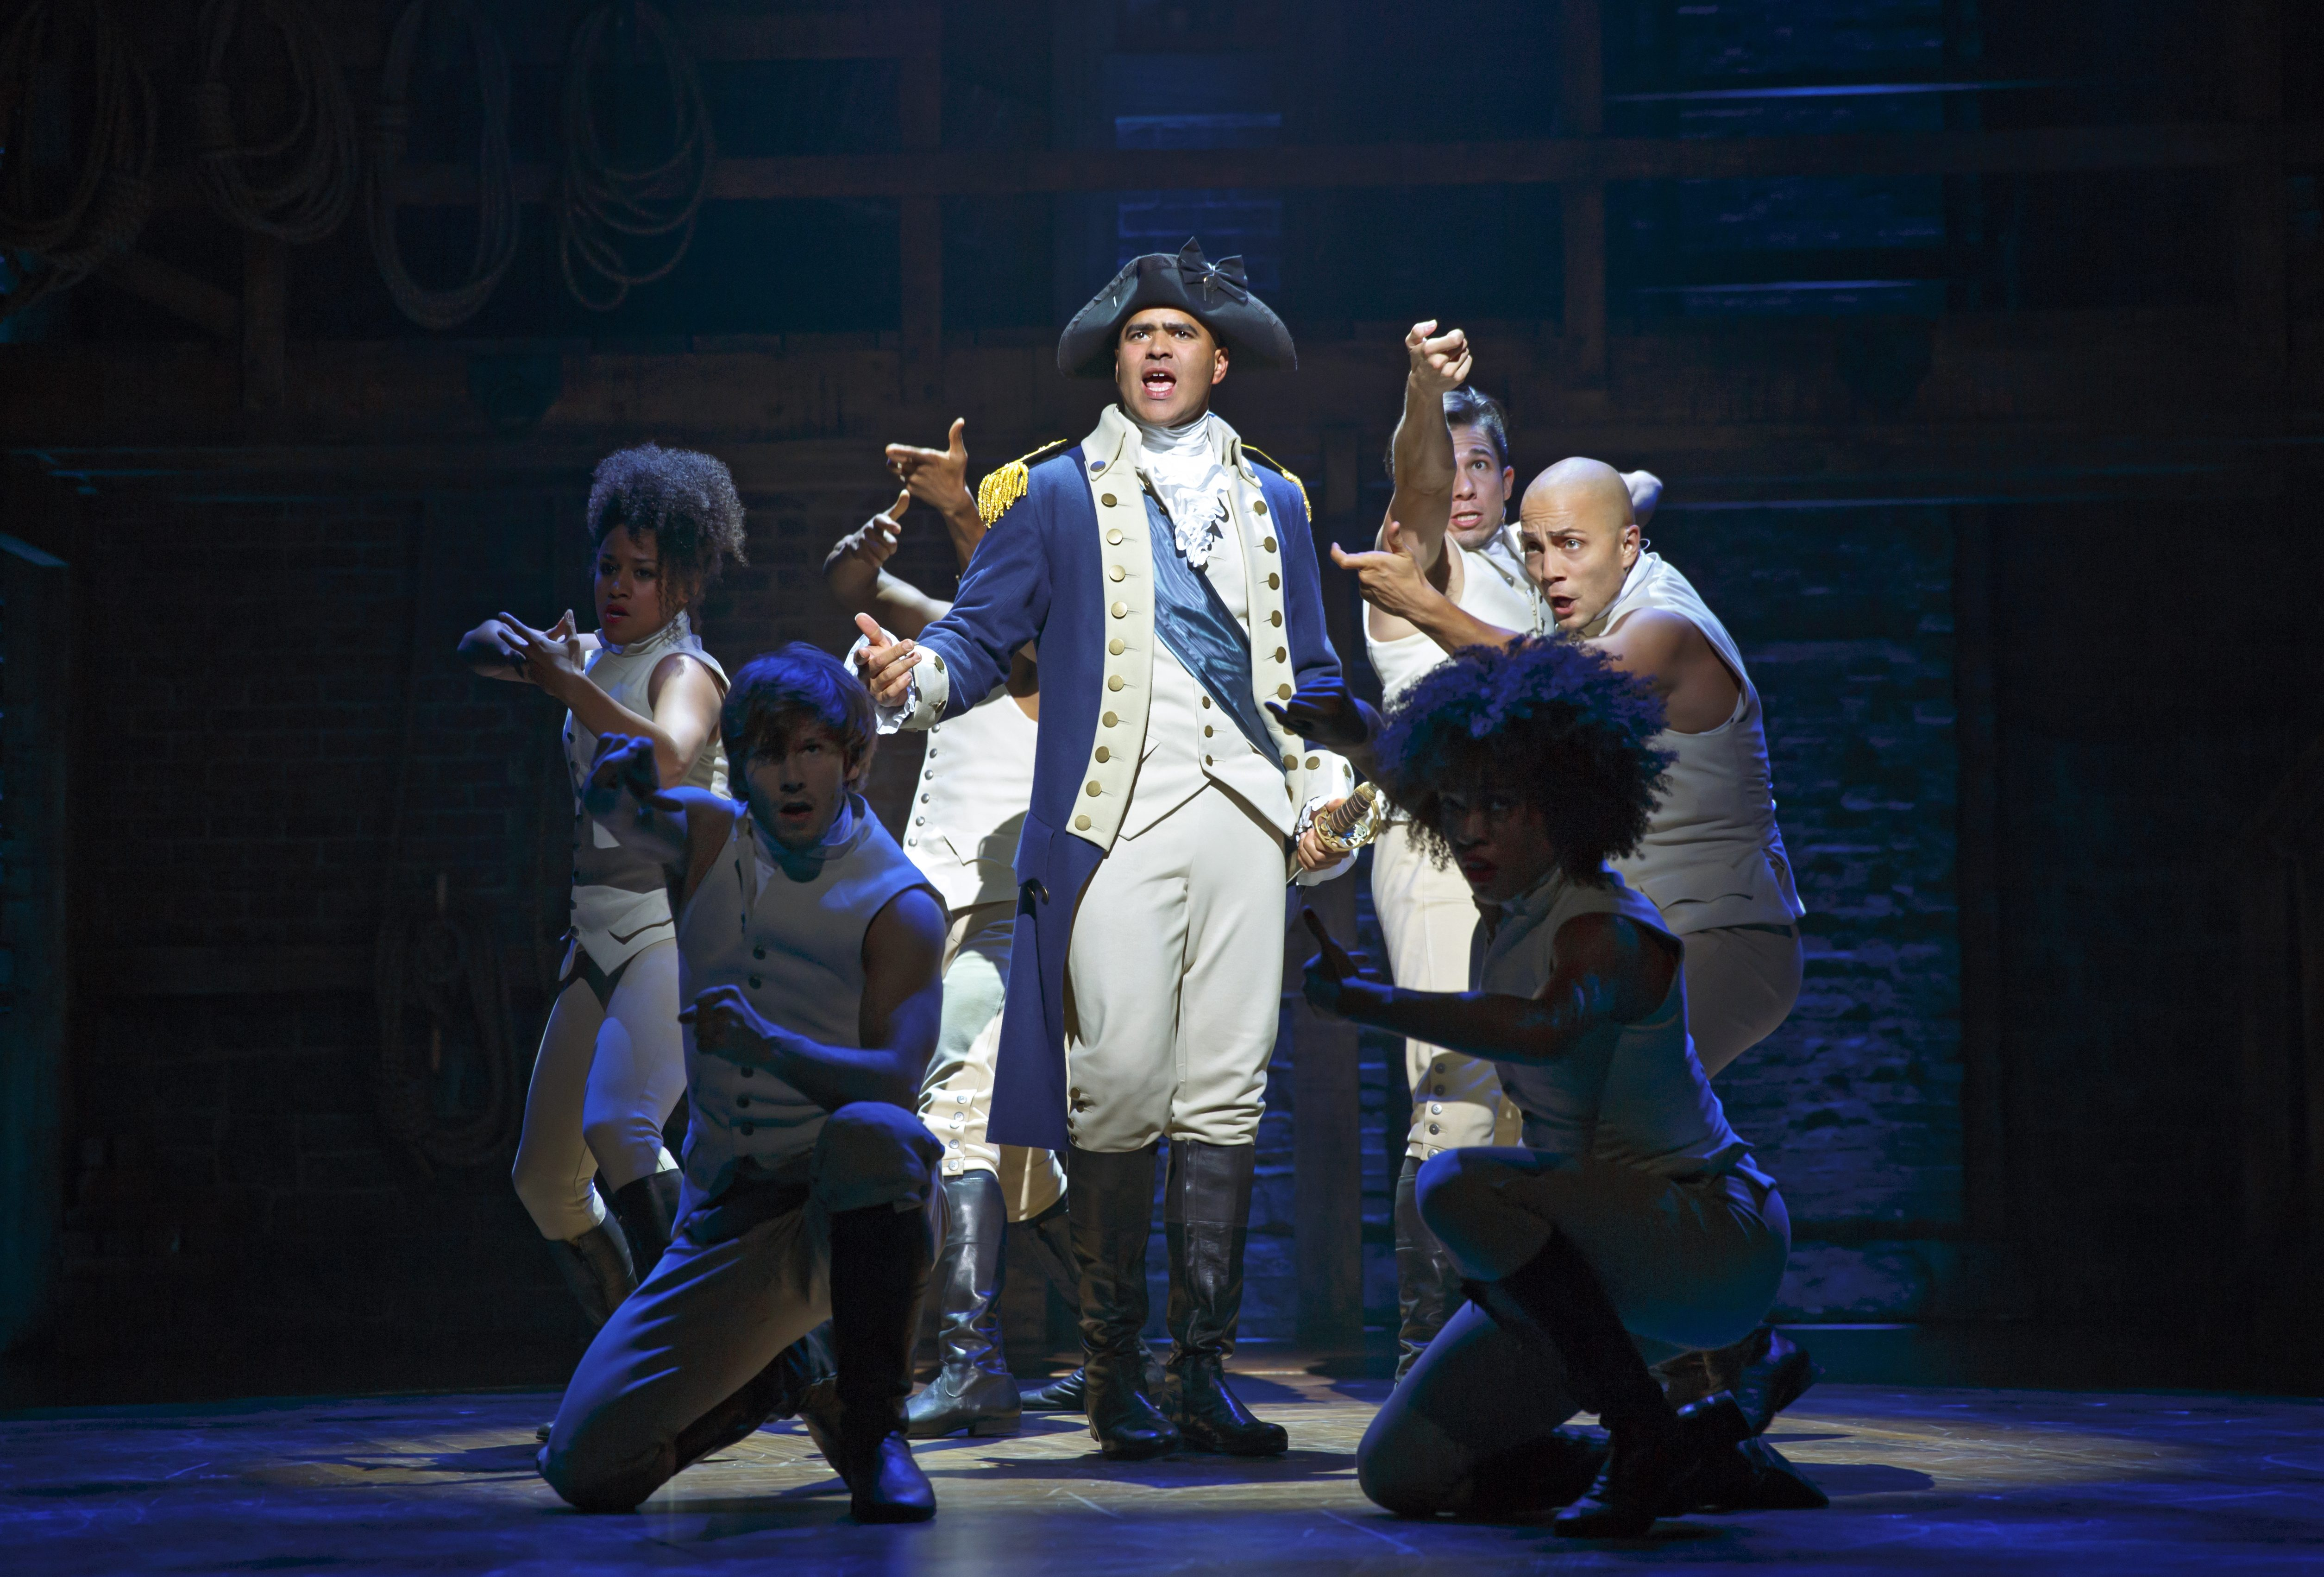 The current state of UK politics makes Hamilton The Musical feel more relevant than ever